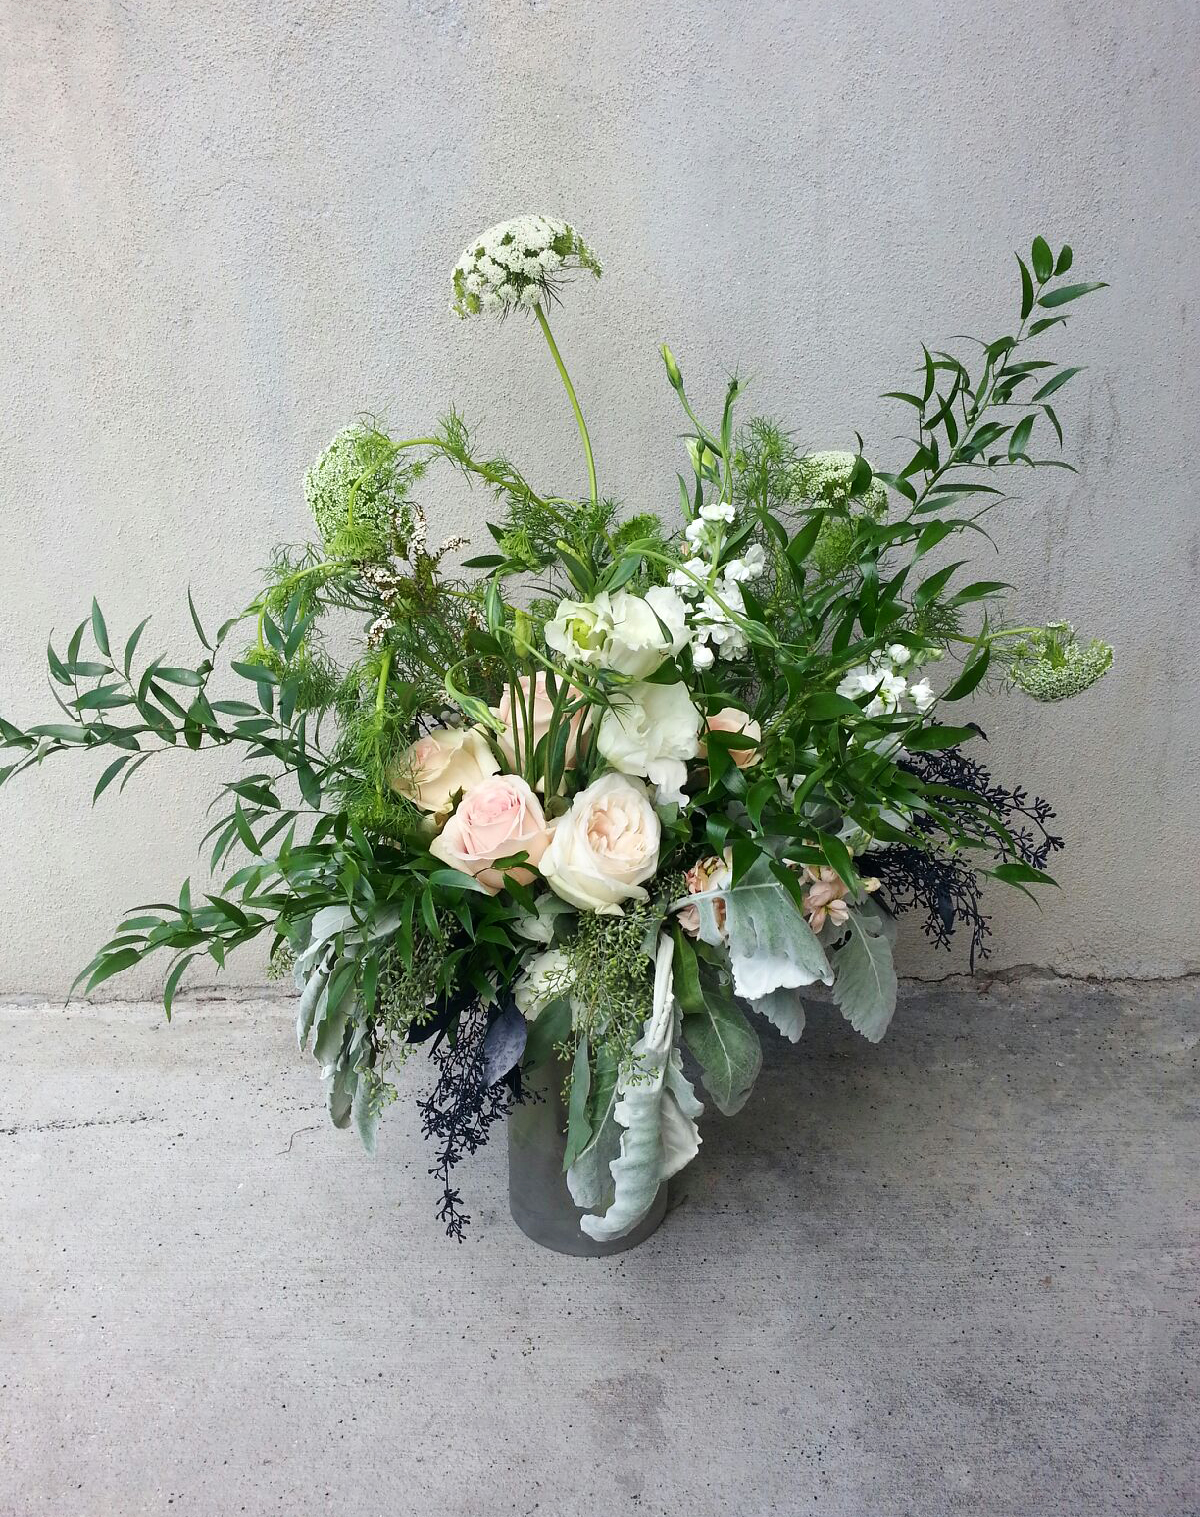 Seeded Eucalyptus Navy Airbrushed Queen Annes Lace Lisianthus Silver Brunia Calcynia Hydrangea And Italian Ruscus